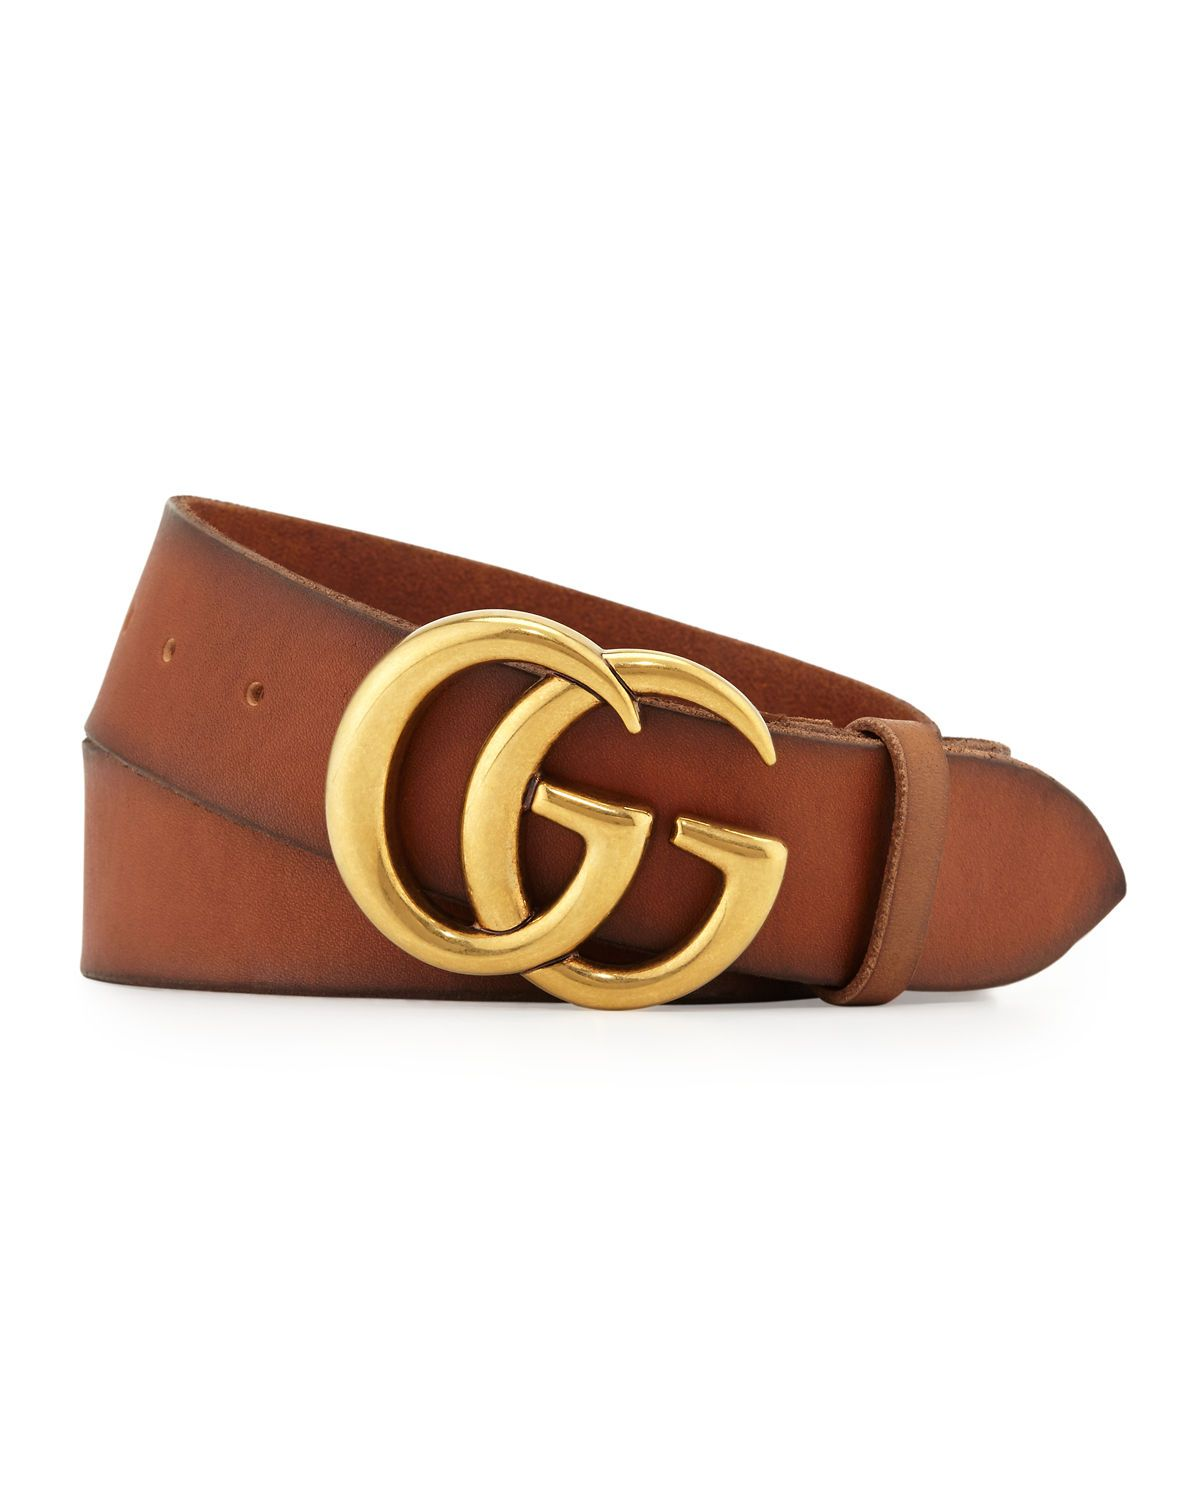 56f99ebfc Smooth leather Gucci belt with double-G buckle. Brass hardware. 1.5